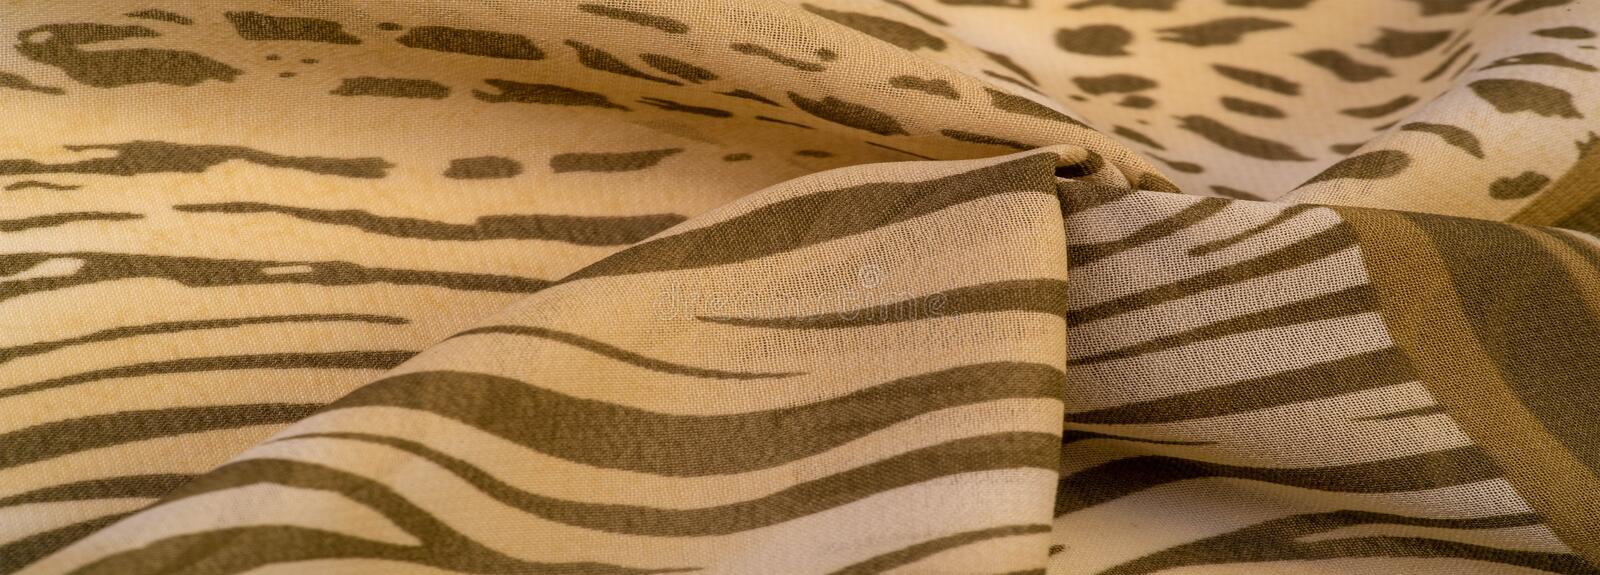 Texture, pattern, collection, silk fabric, African theme, animal skins, brown tones, Watercolor Background Photos Printed Props stock photo